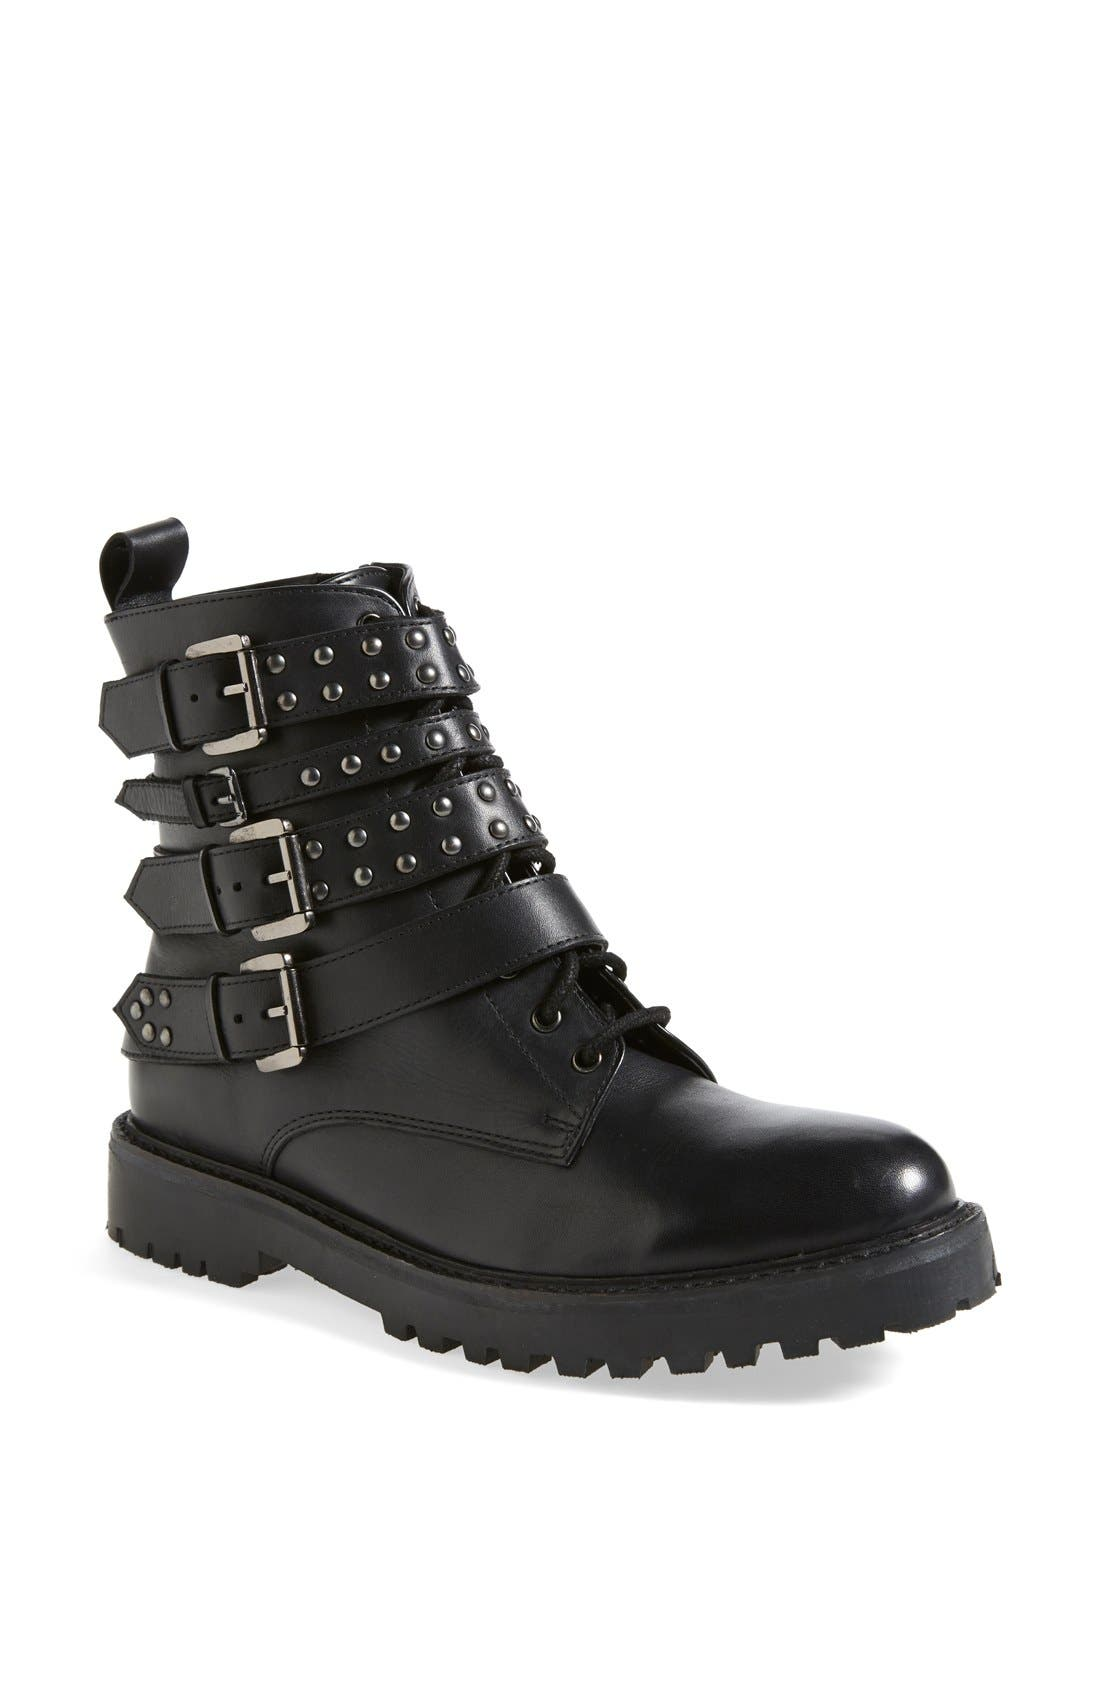 Alternate Image 1 Selected - Topshop 'Apply' Lace-Up Biker Boot (Women)